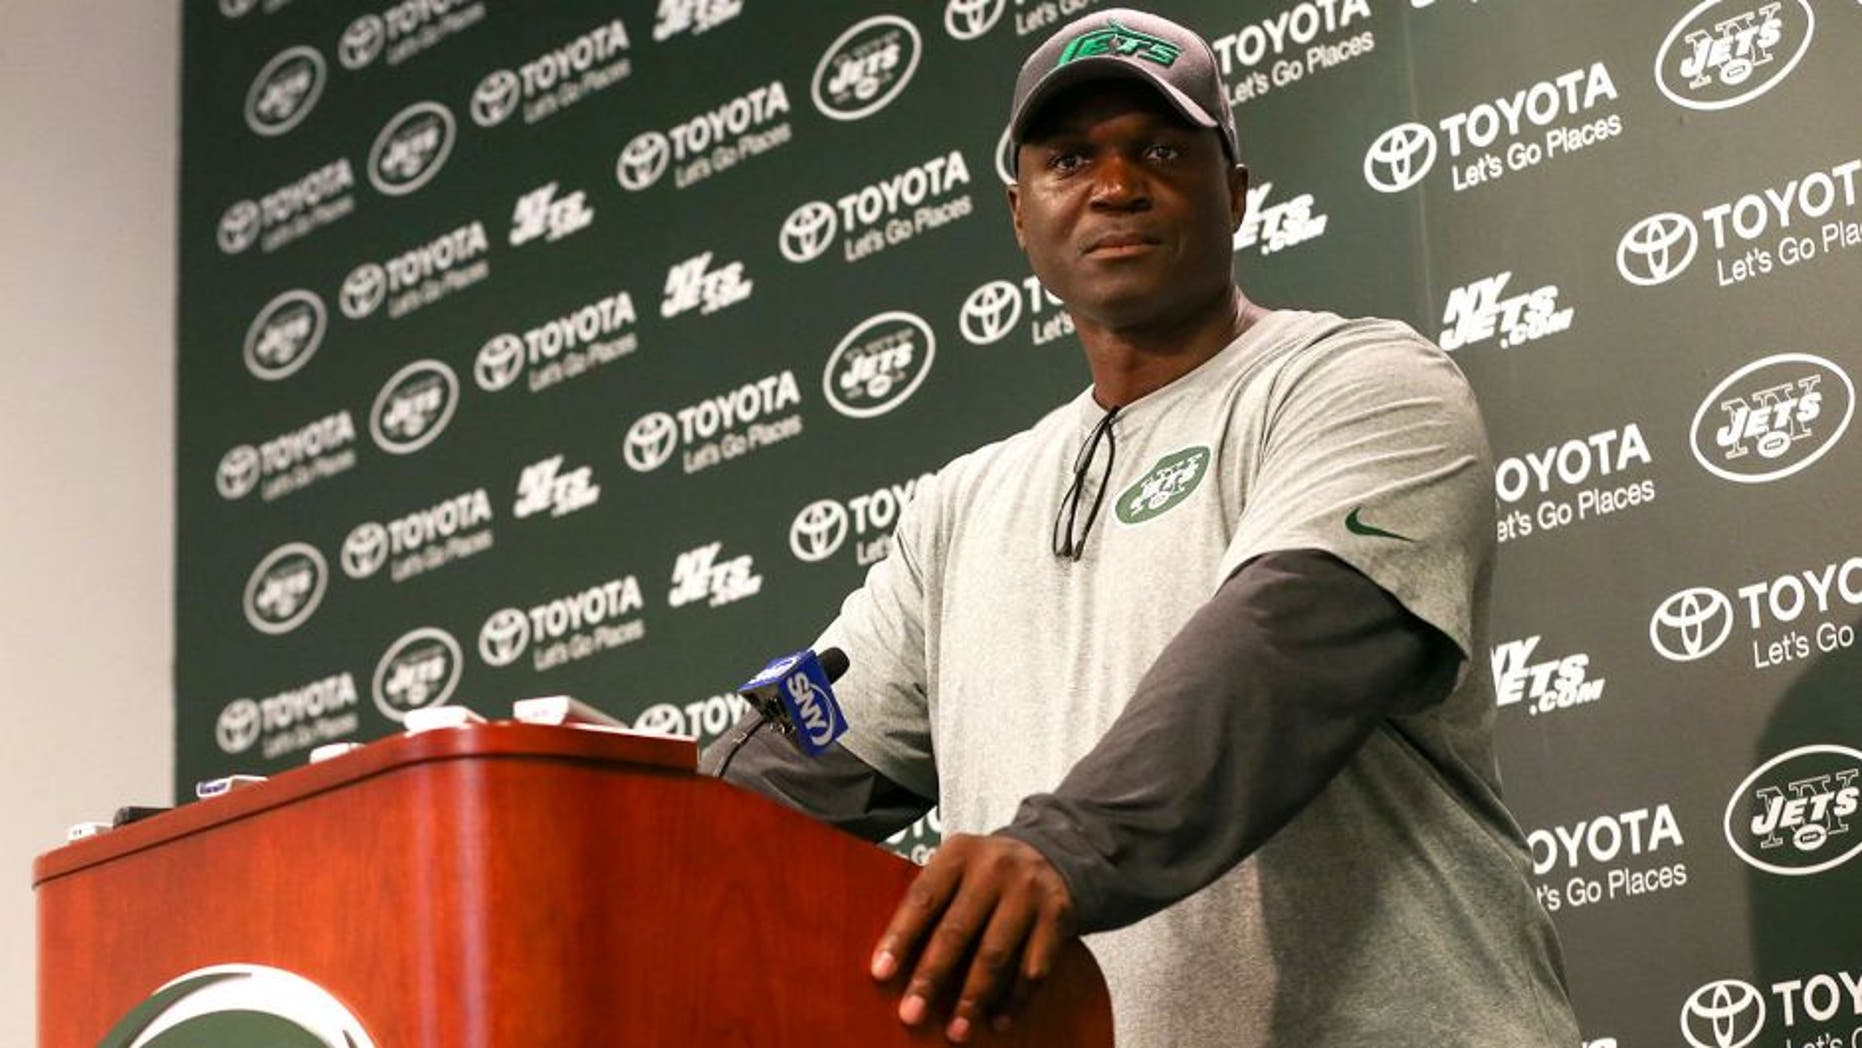 May 27, 2015; East Rutherford, NJ, USA; New York Jets head coach Todd Bowles speaks to the media after the organized team activities at Atlantic Health Jets Training Center. Mandatory Credit: Ed Mulholland-USA TODAY Sports